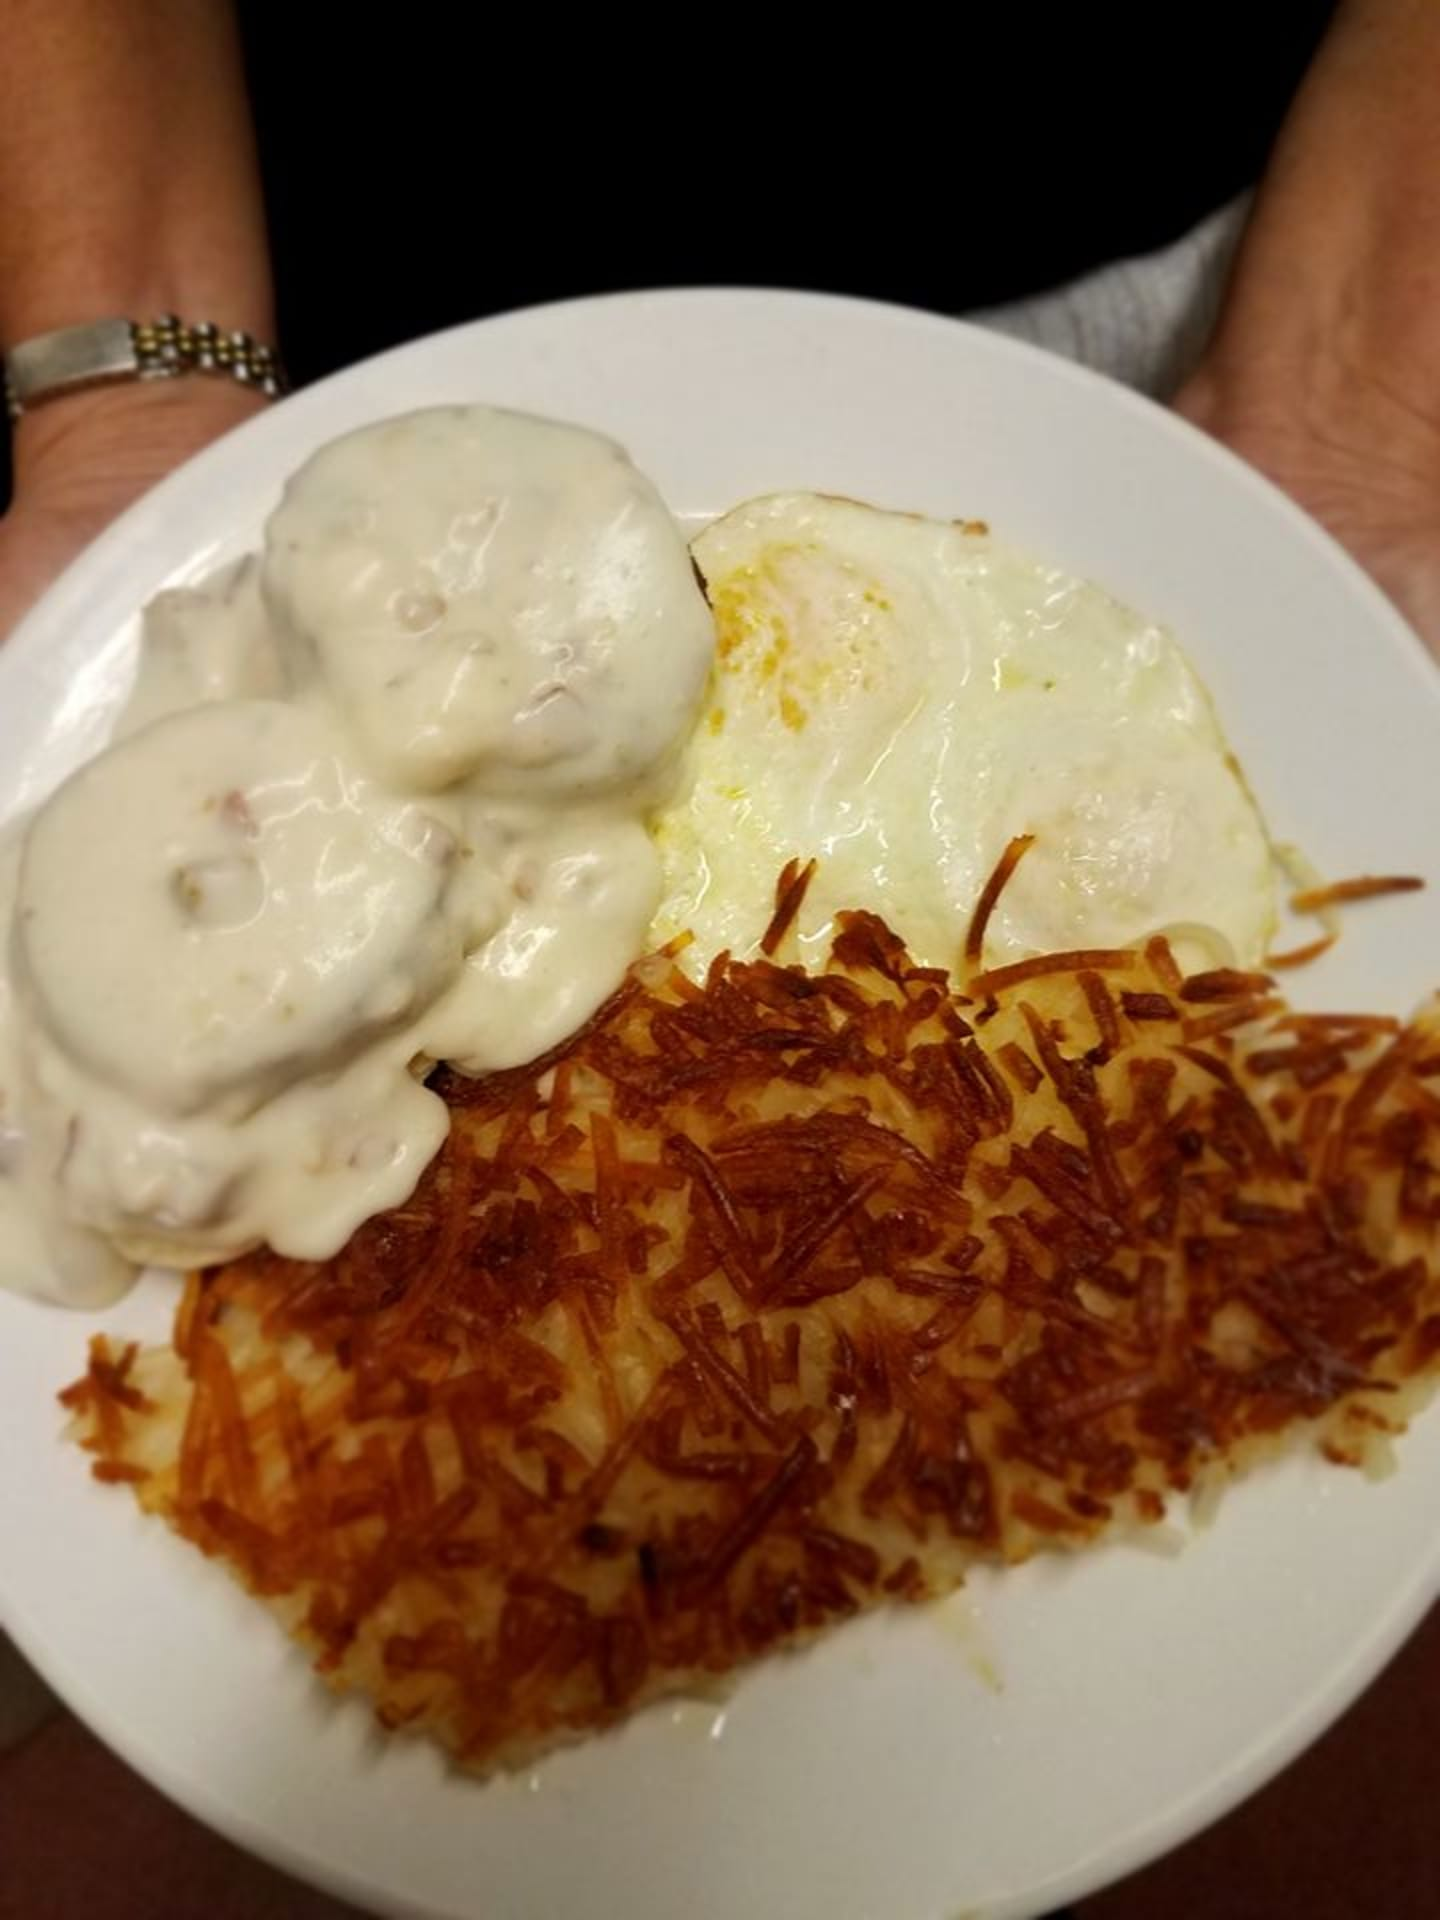 Biscuits & Gravy with Two Eggs